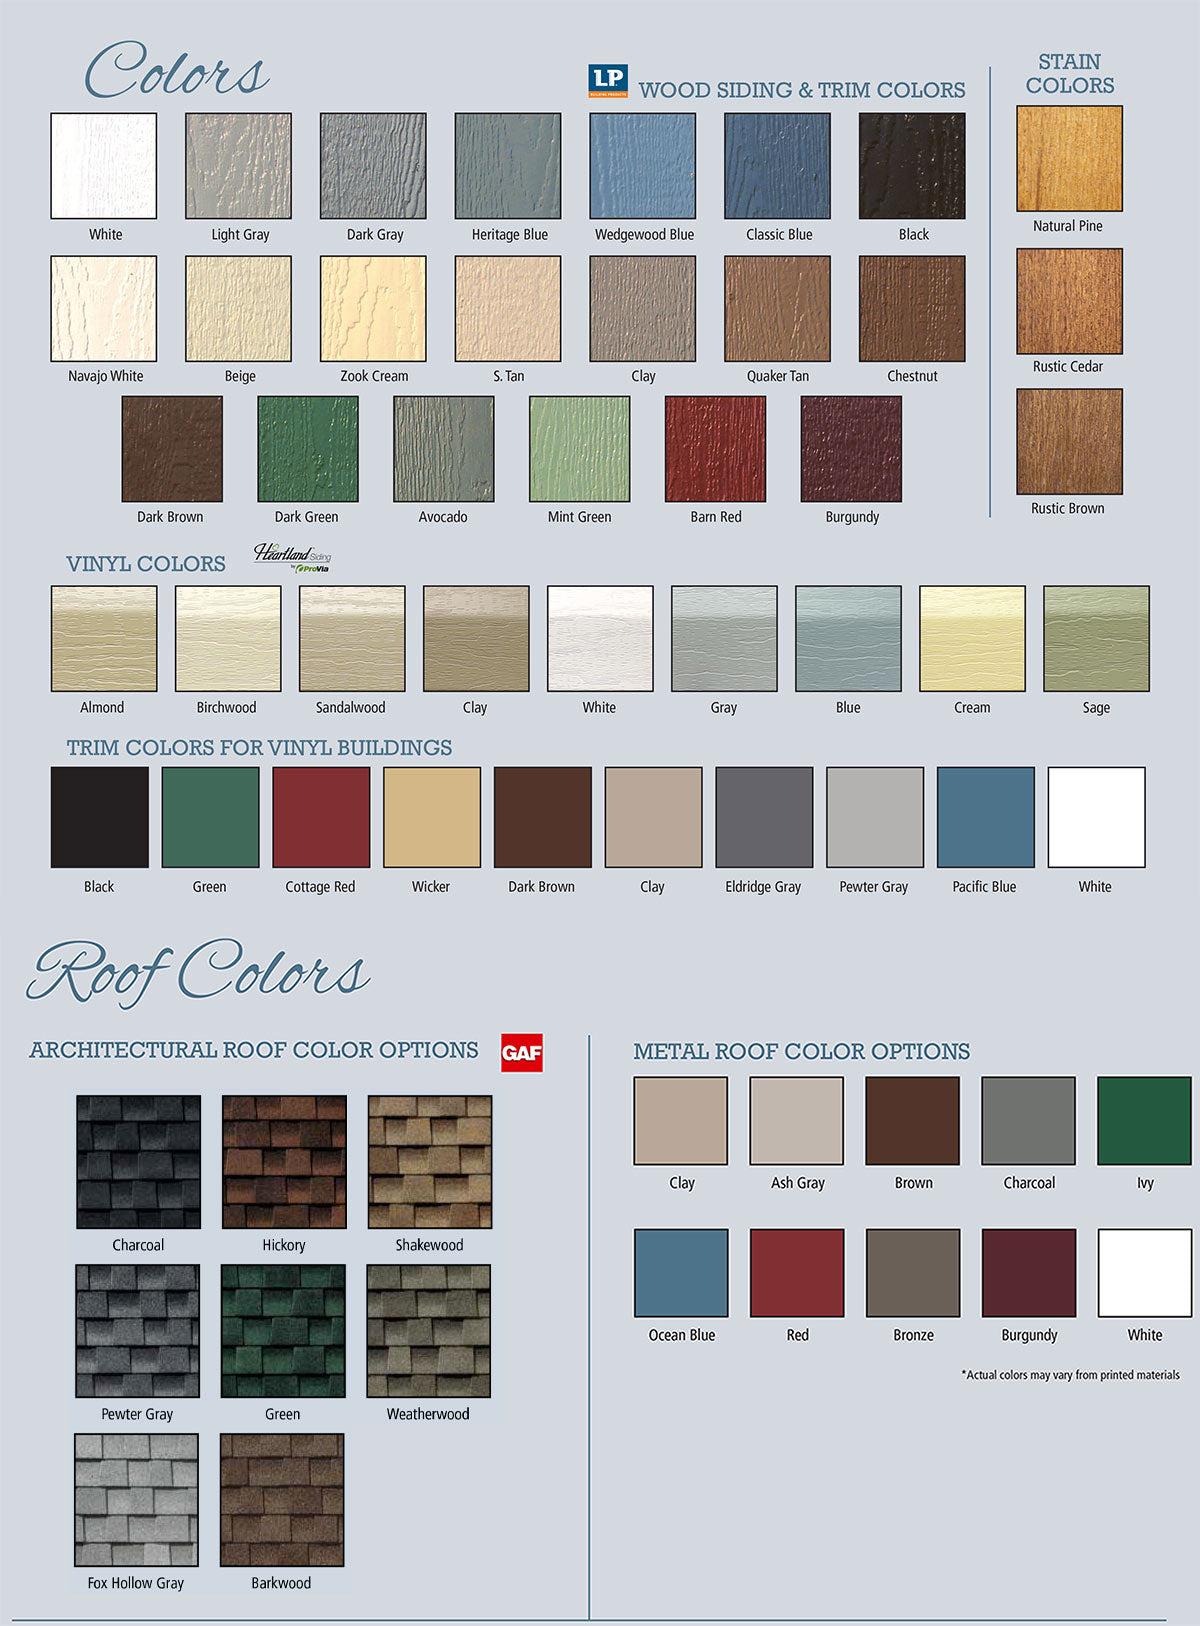 Esh Shed color options for siding and roof